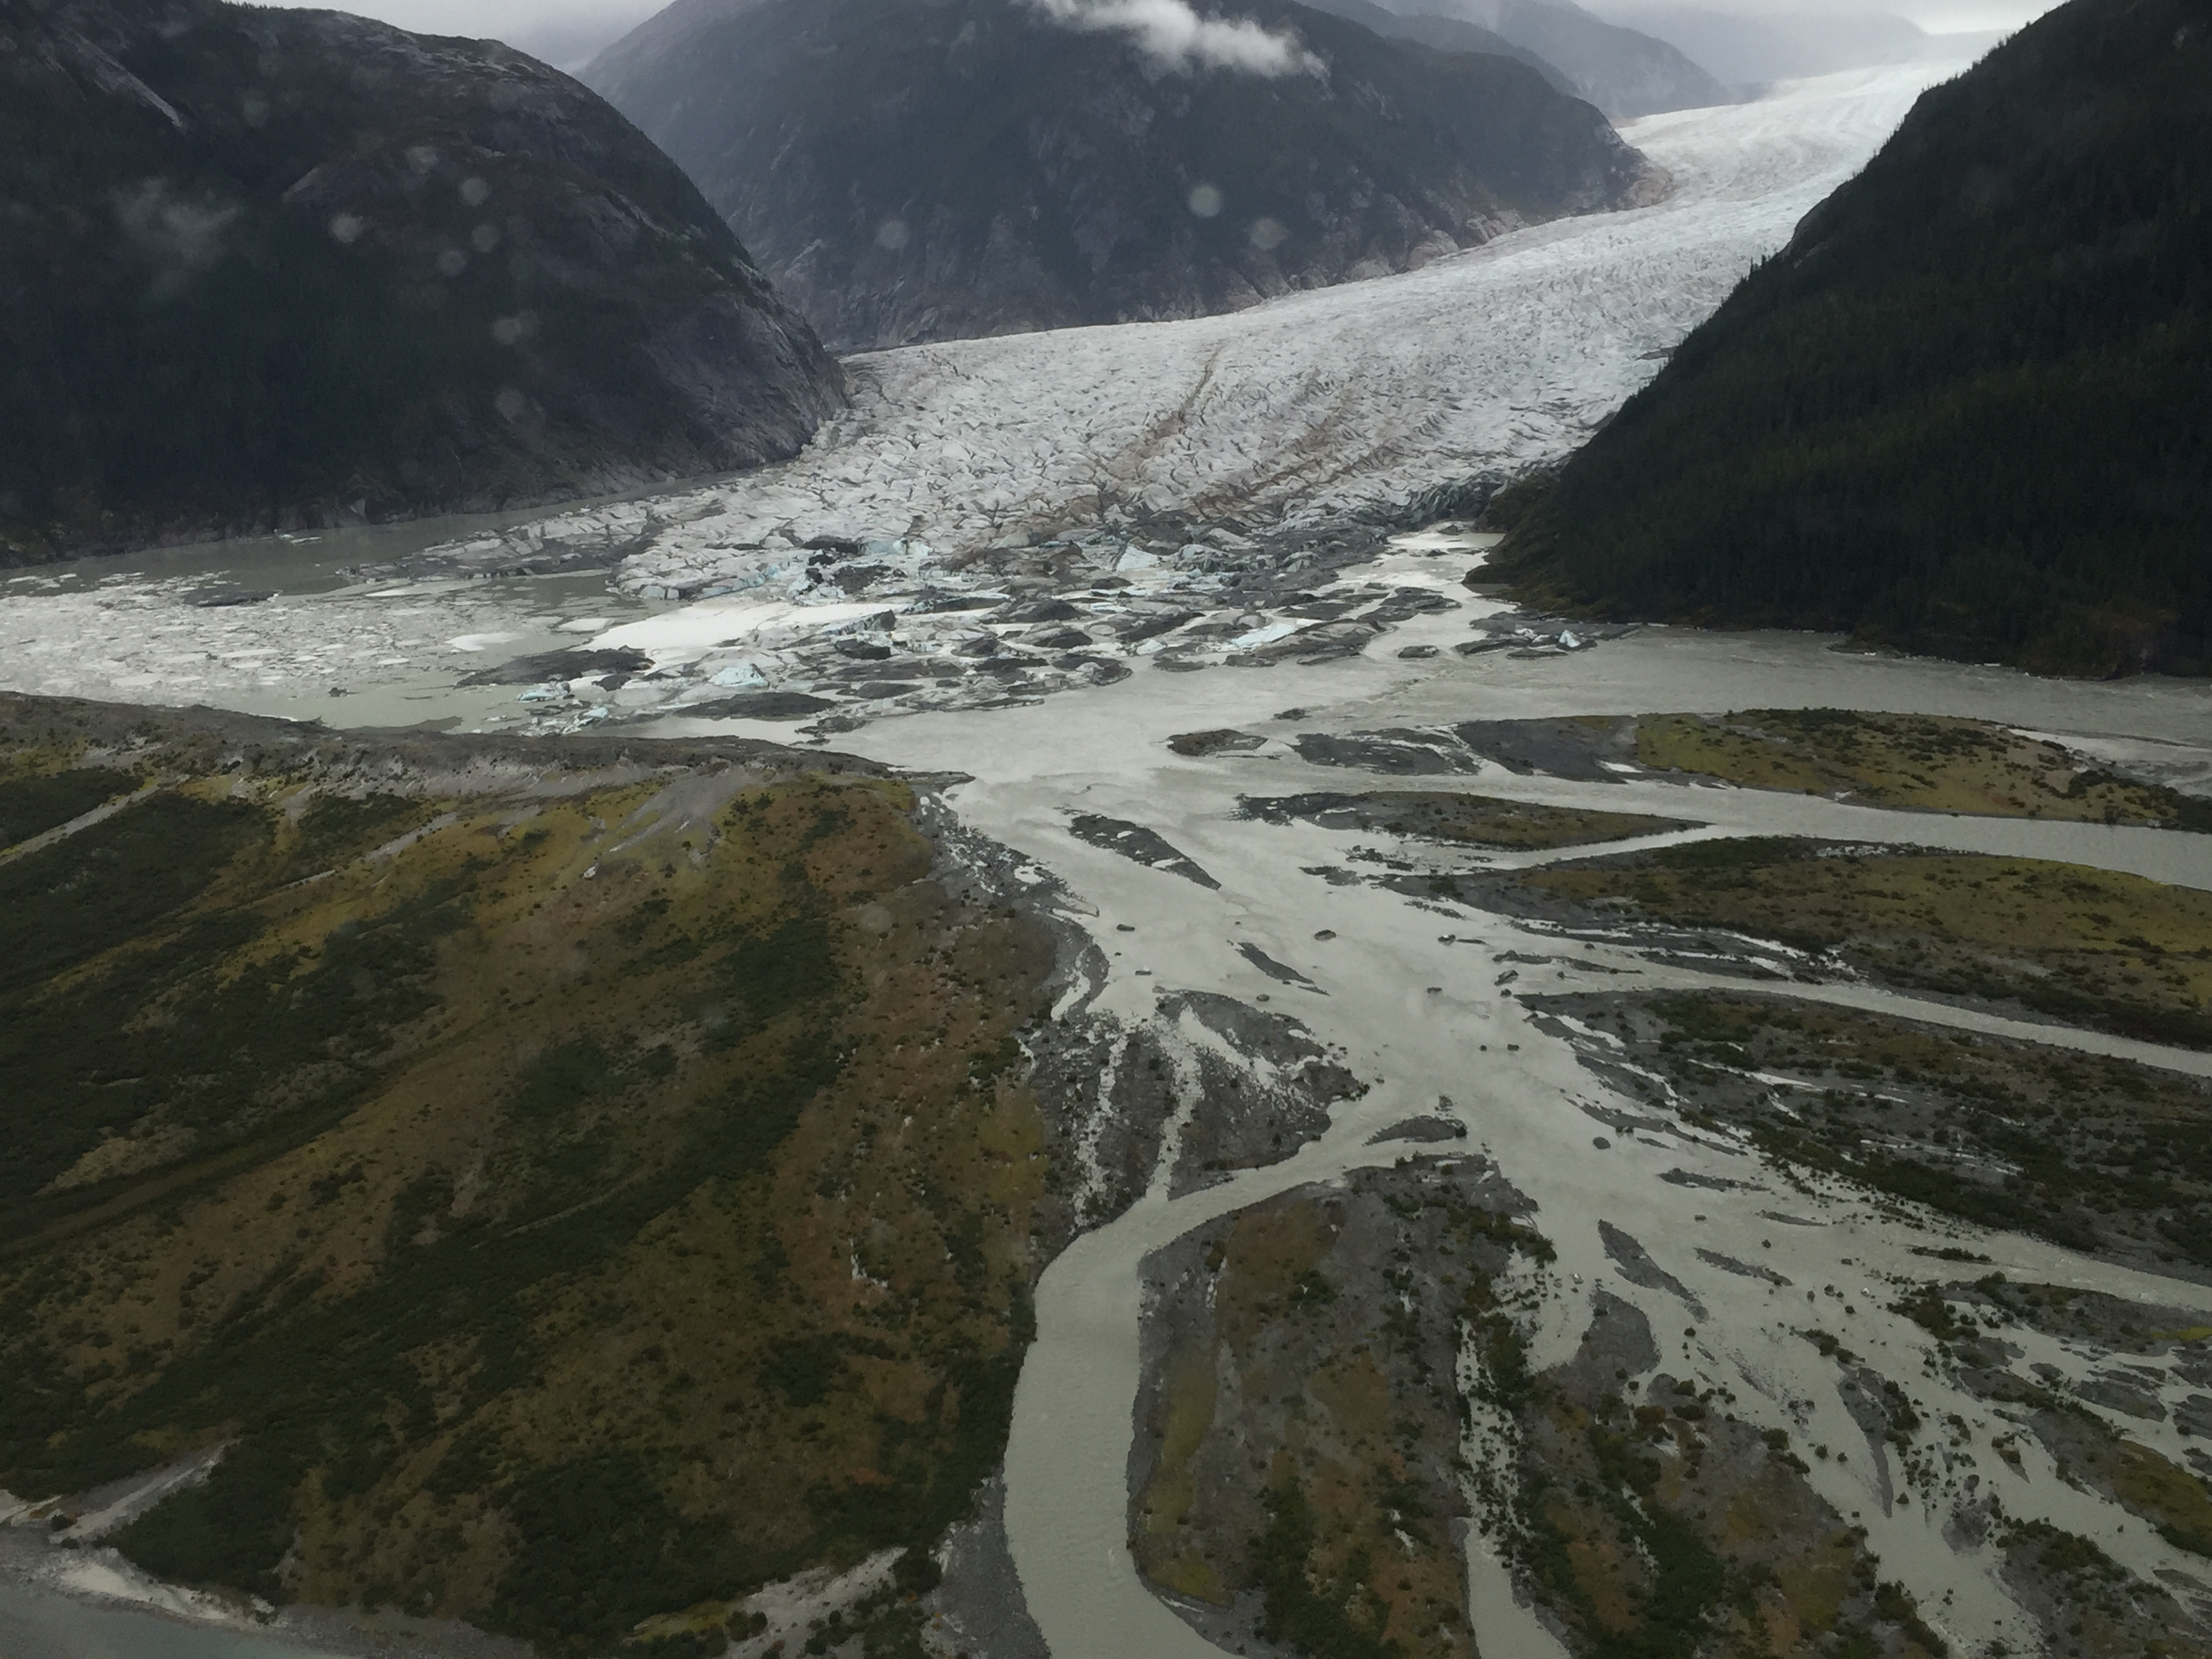 Flooding at Baird Glacier spreads green water